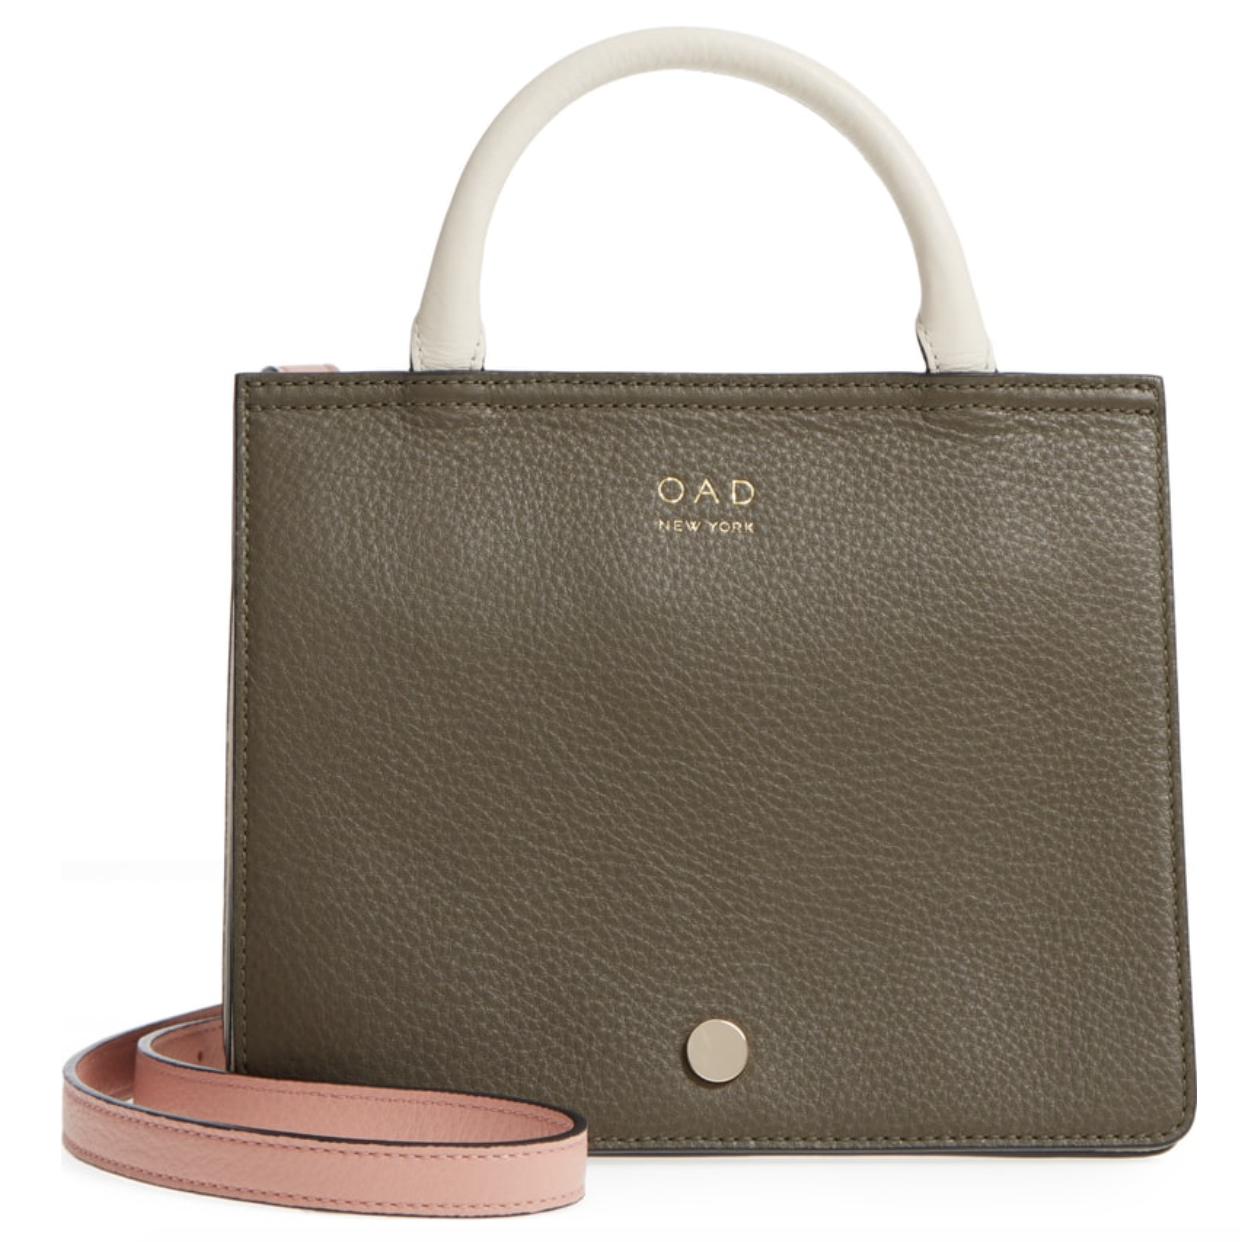 Nordstrom Anniversary OAD purse.png